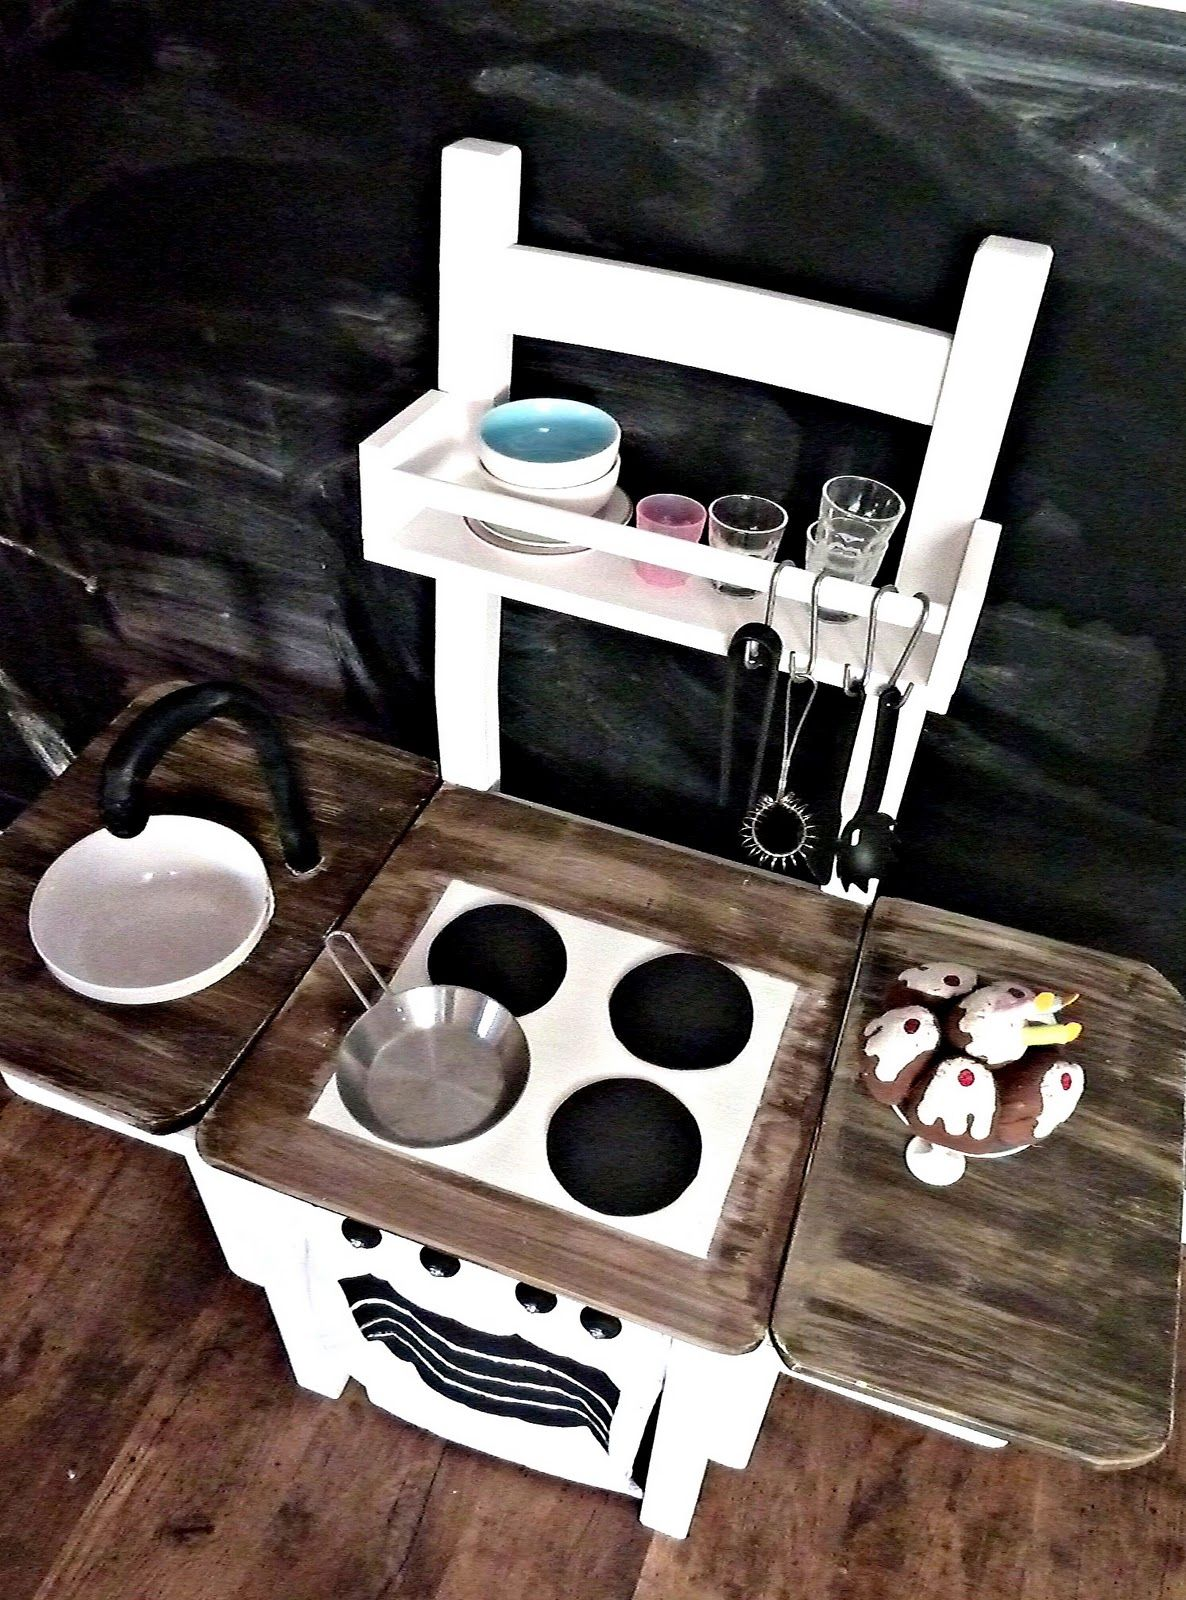 IKEA Hackers: Repurposed Ivar Chair Into A Kiddie Kitchen